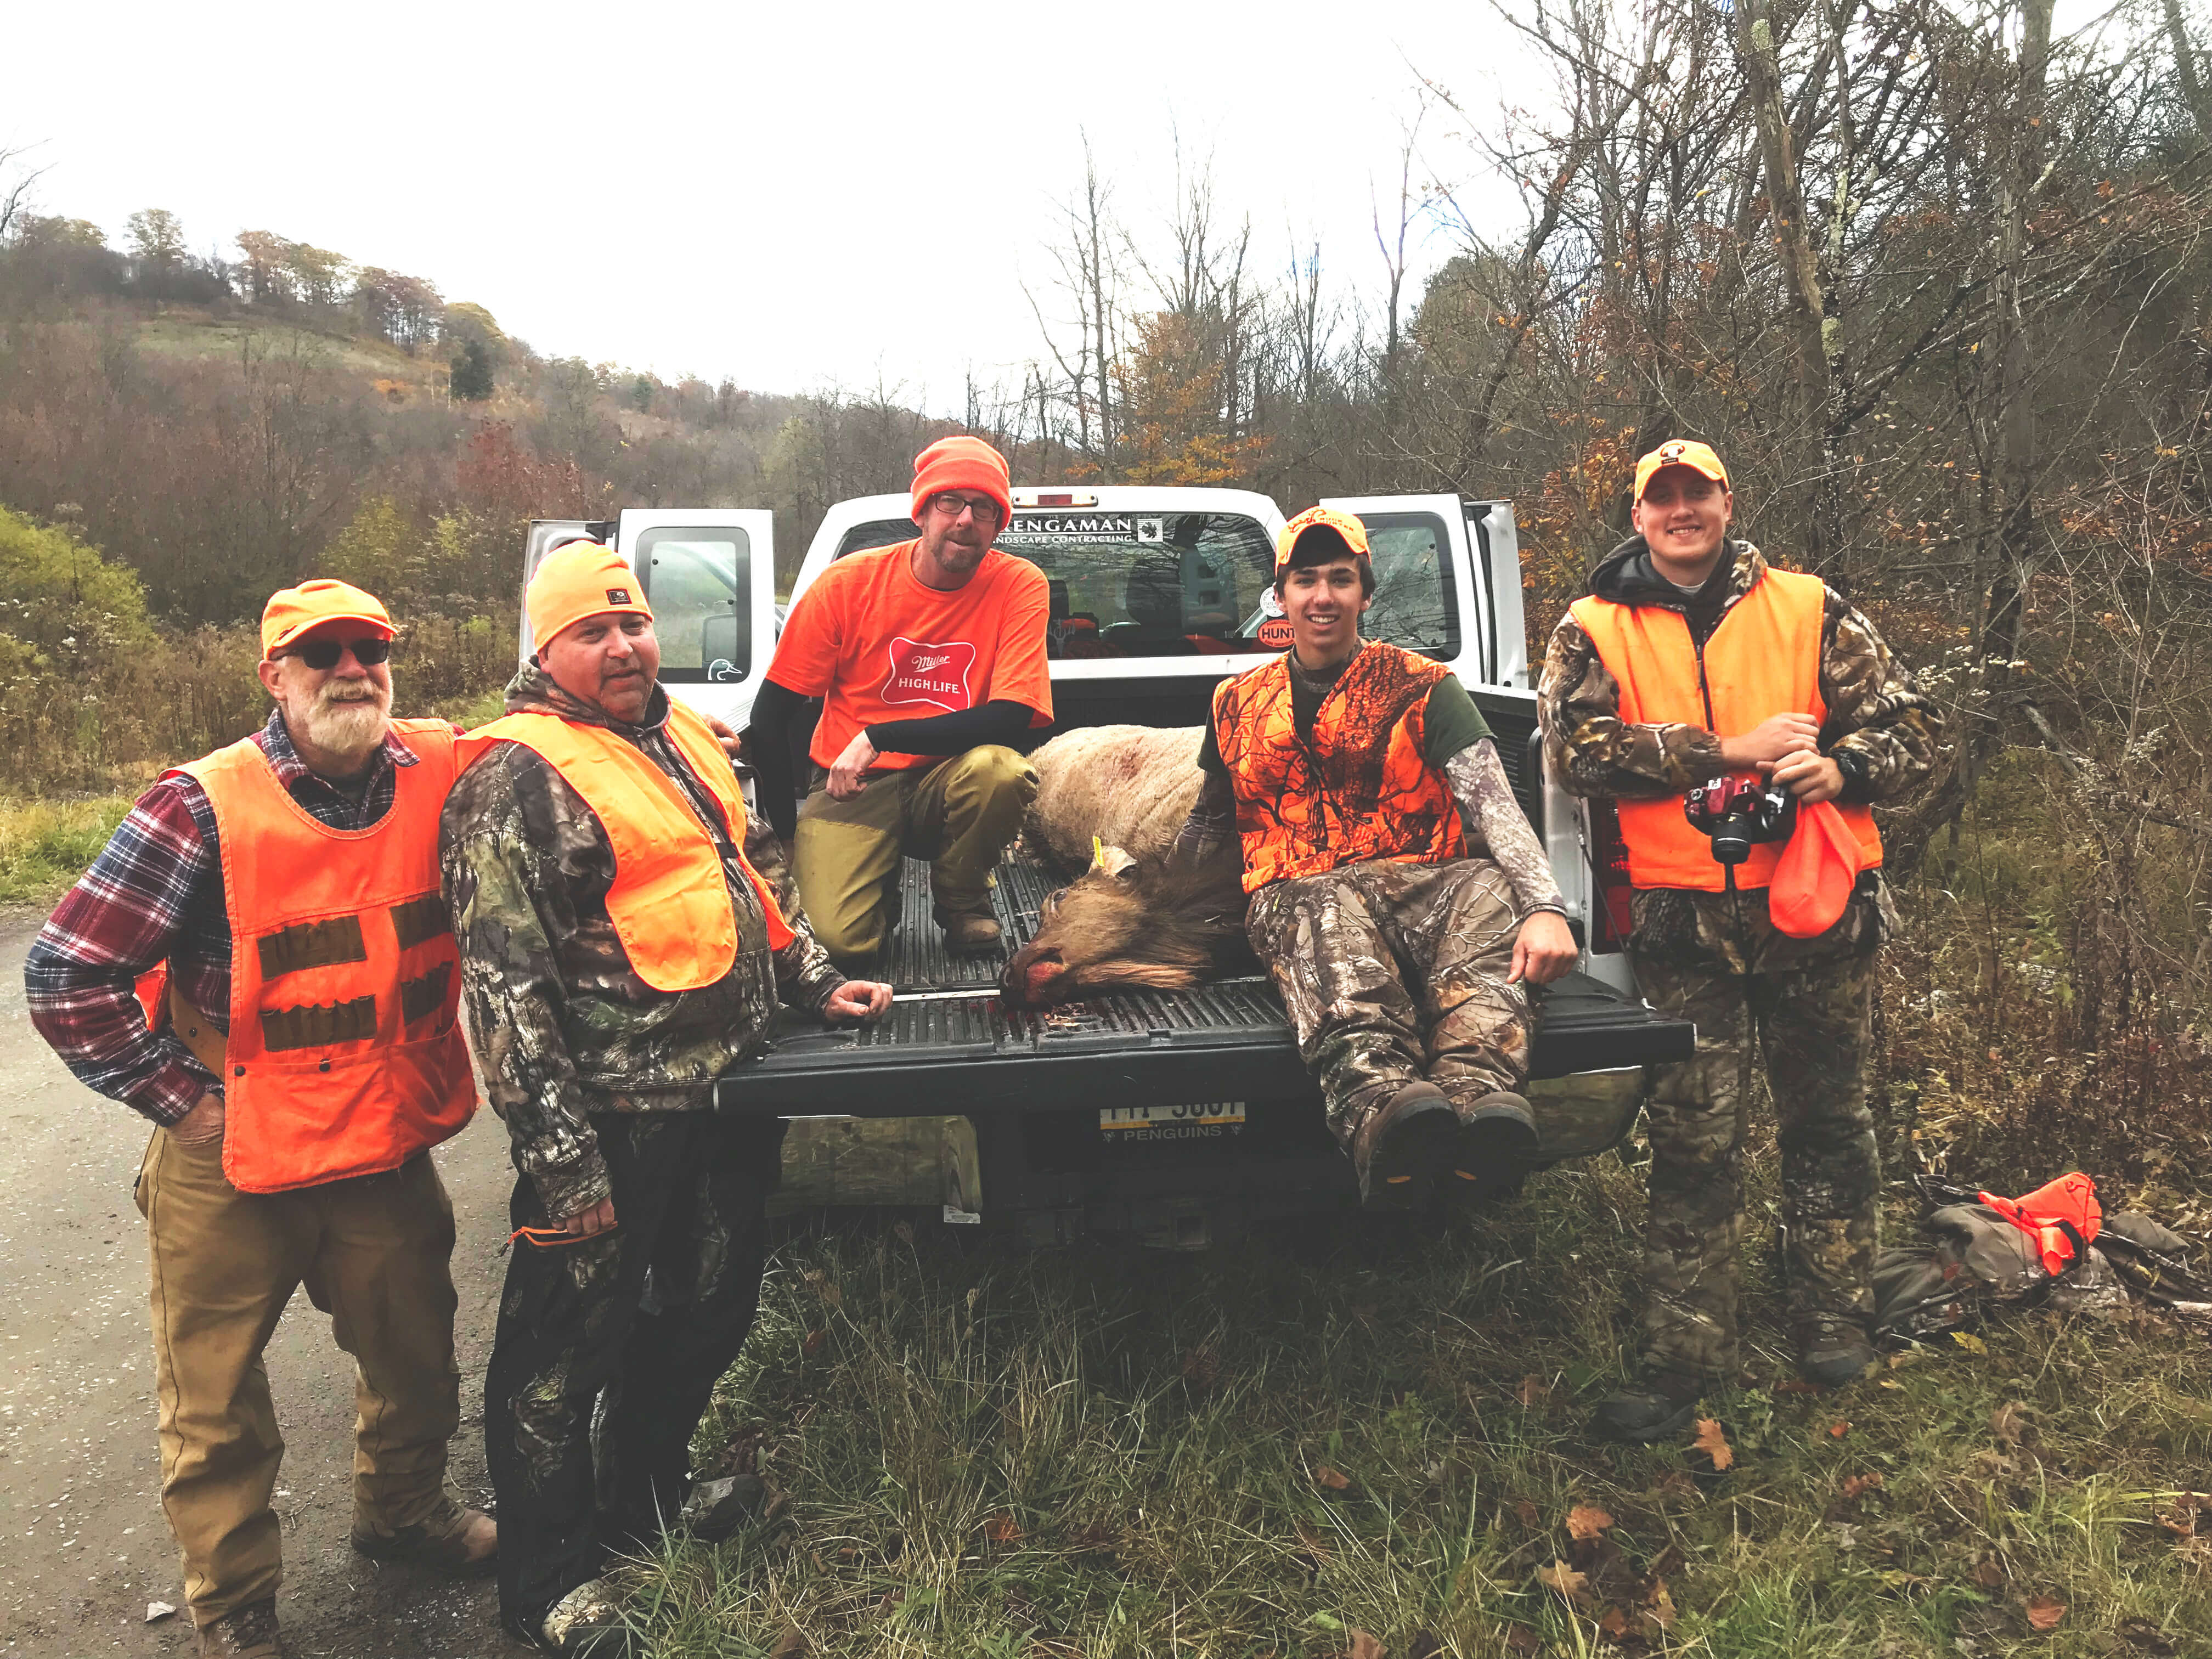 elk-hunt-youth-pa-game-commission - EverybodyAdventures